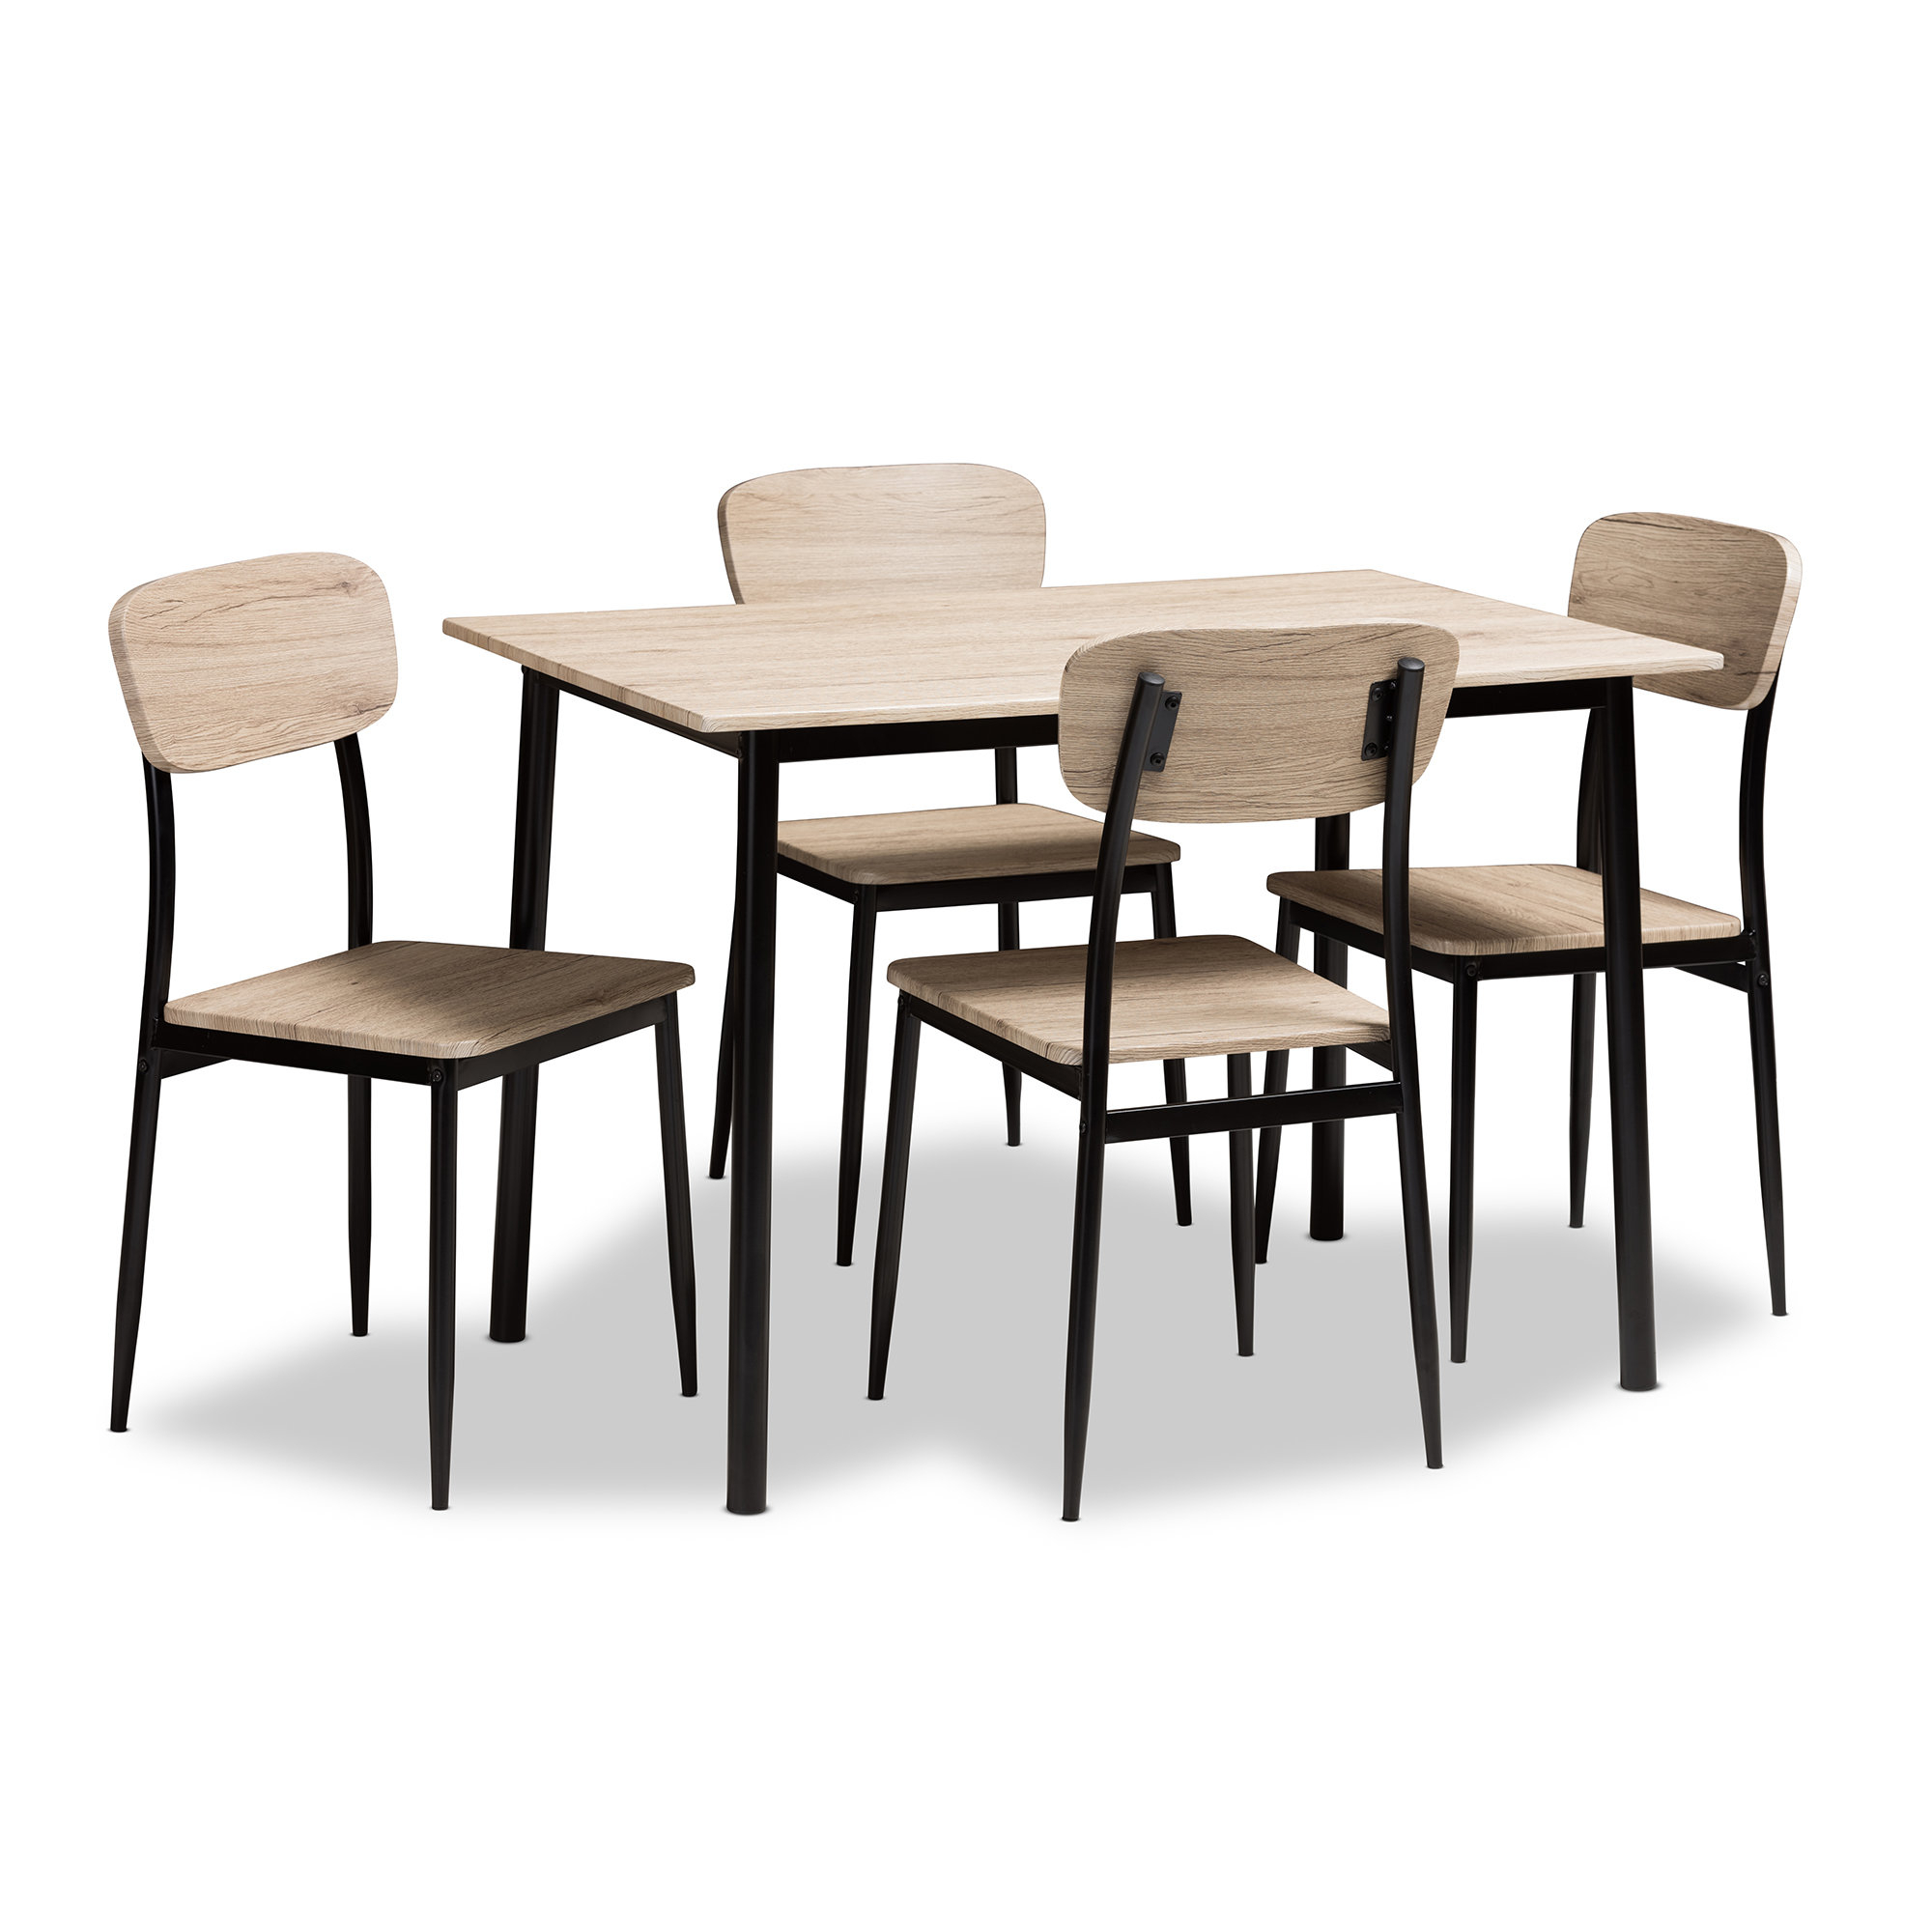 Fashionable Wiggs 5 Piece Dining Set Pertaining To Middleport 5 Piece Dining Sets (View 7 of 20)